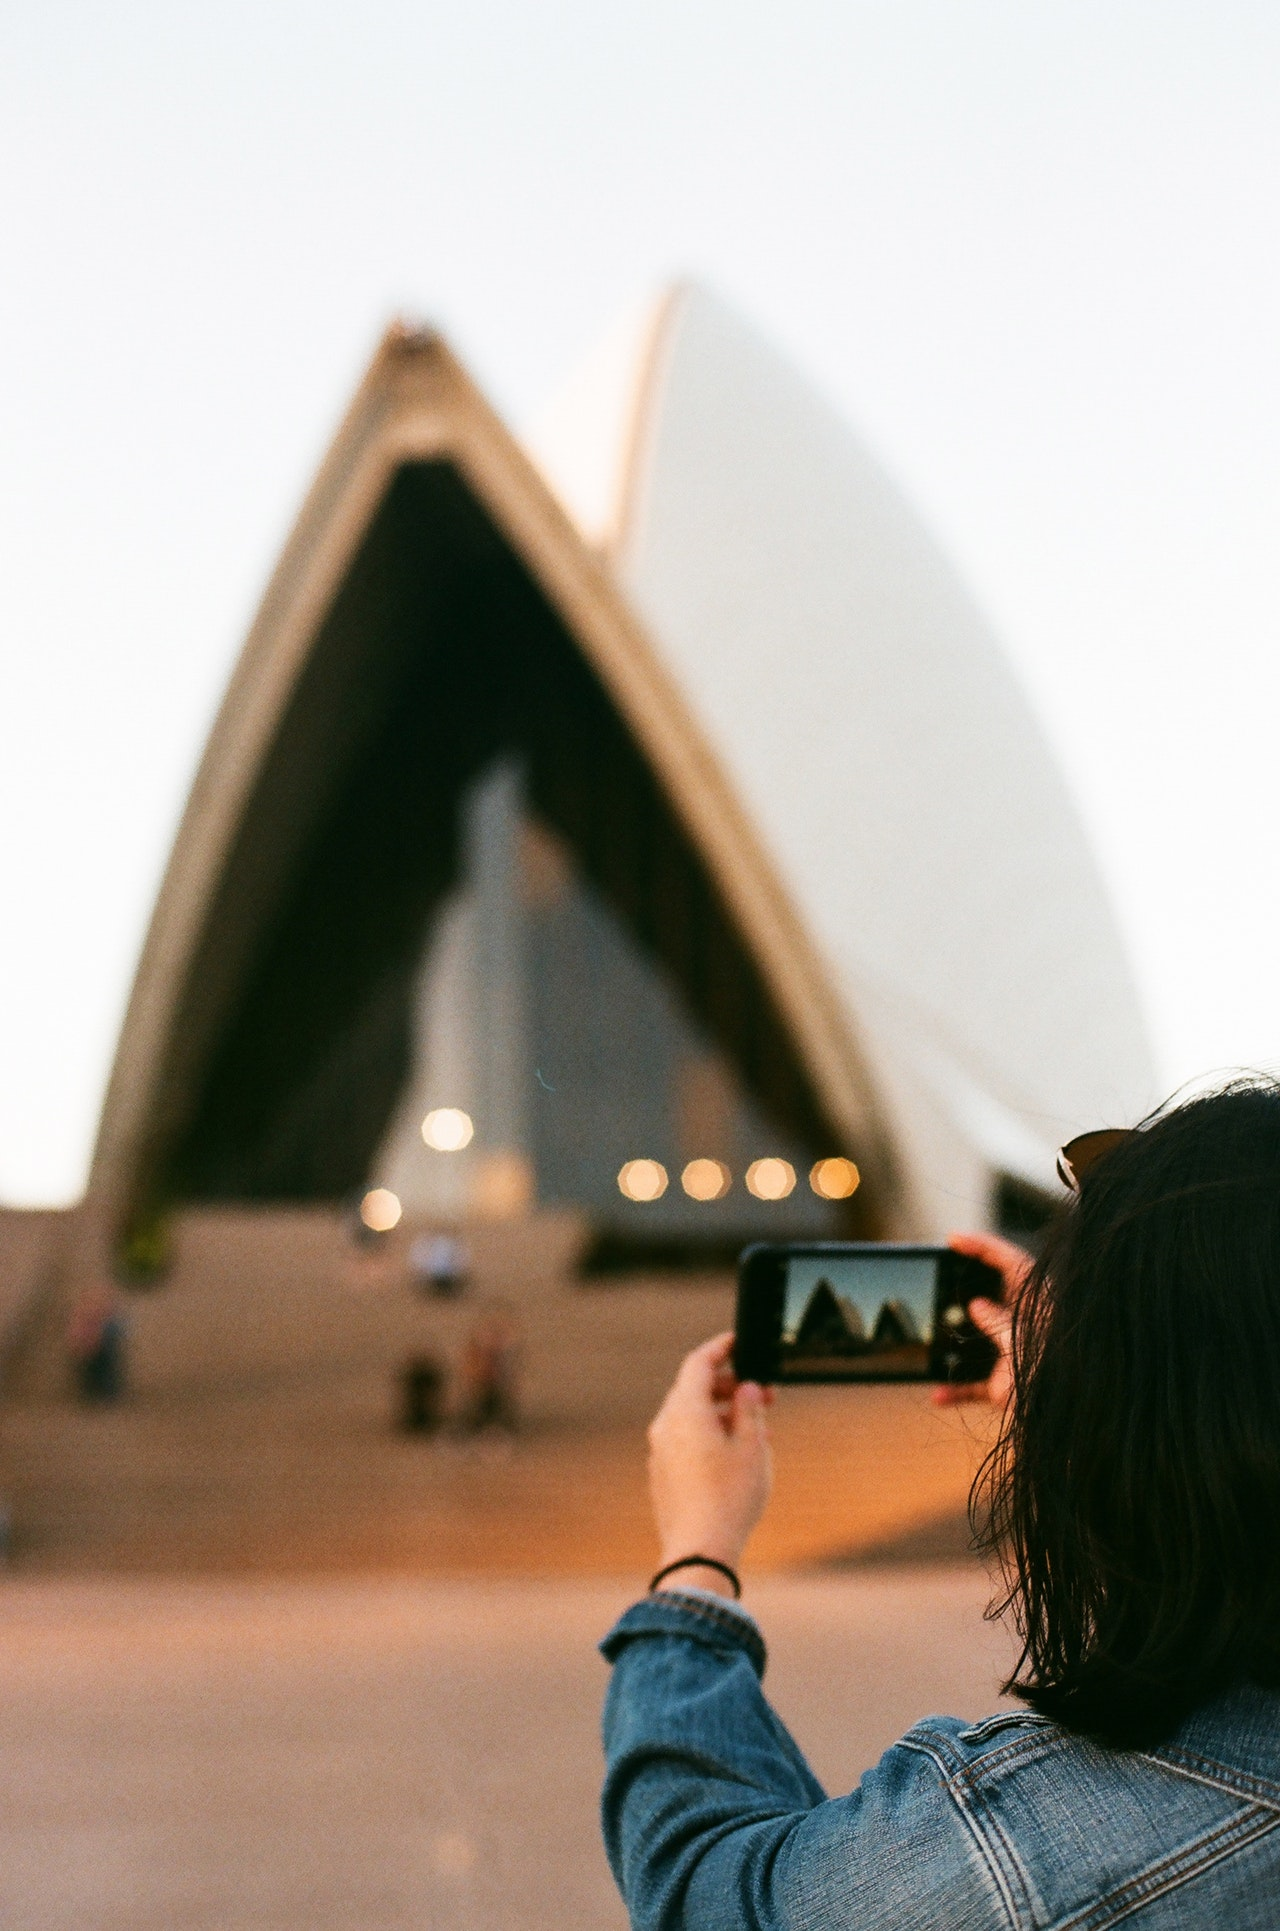 smartphone building photographer sydney